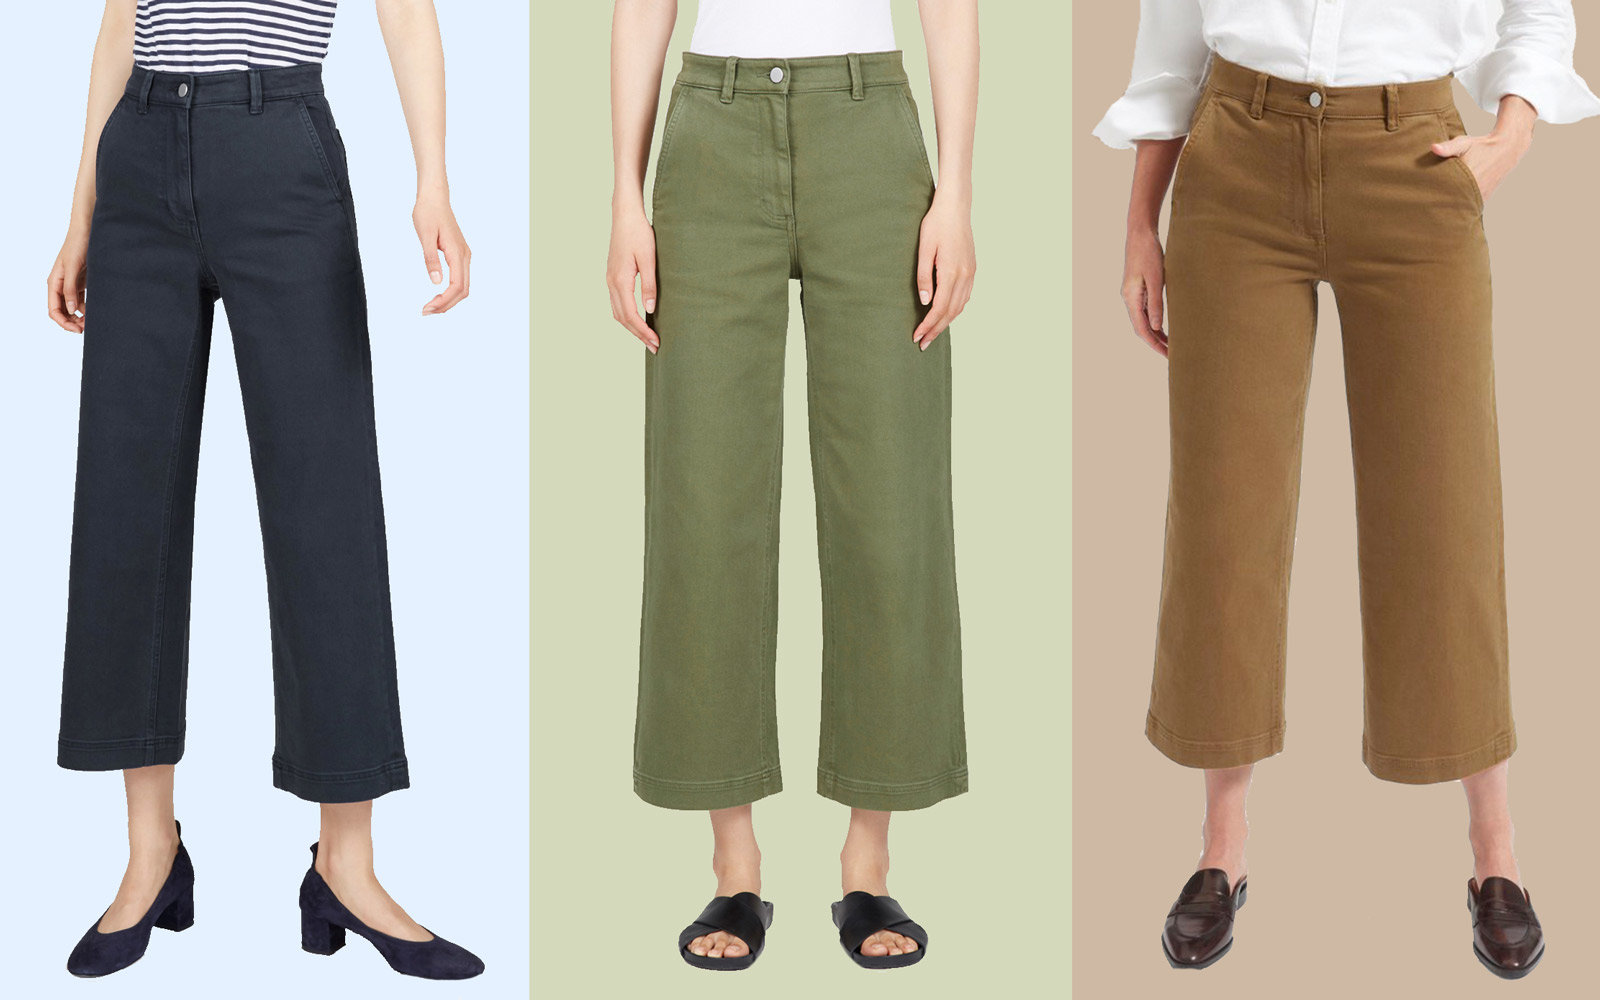 These Wildly Popular Wide-leg Pants Have 5,500 Near-perfect Reviews